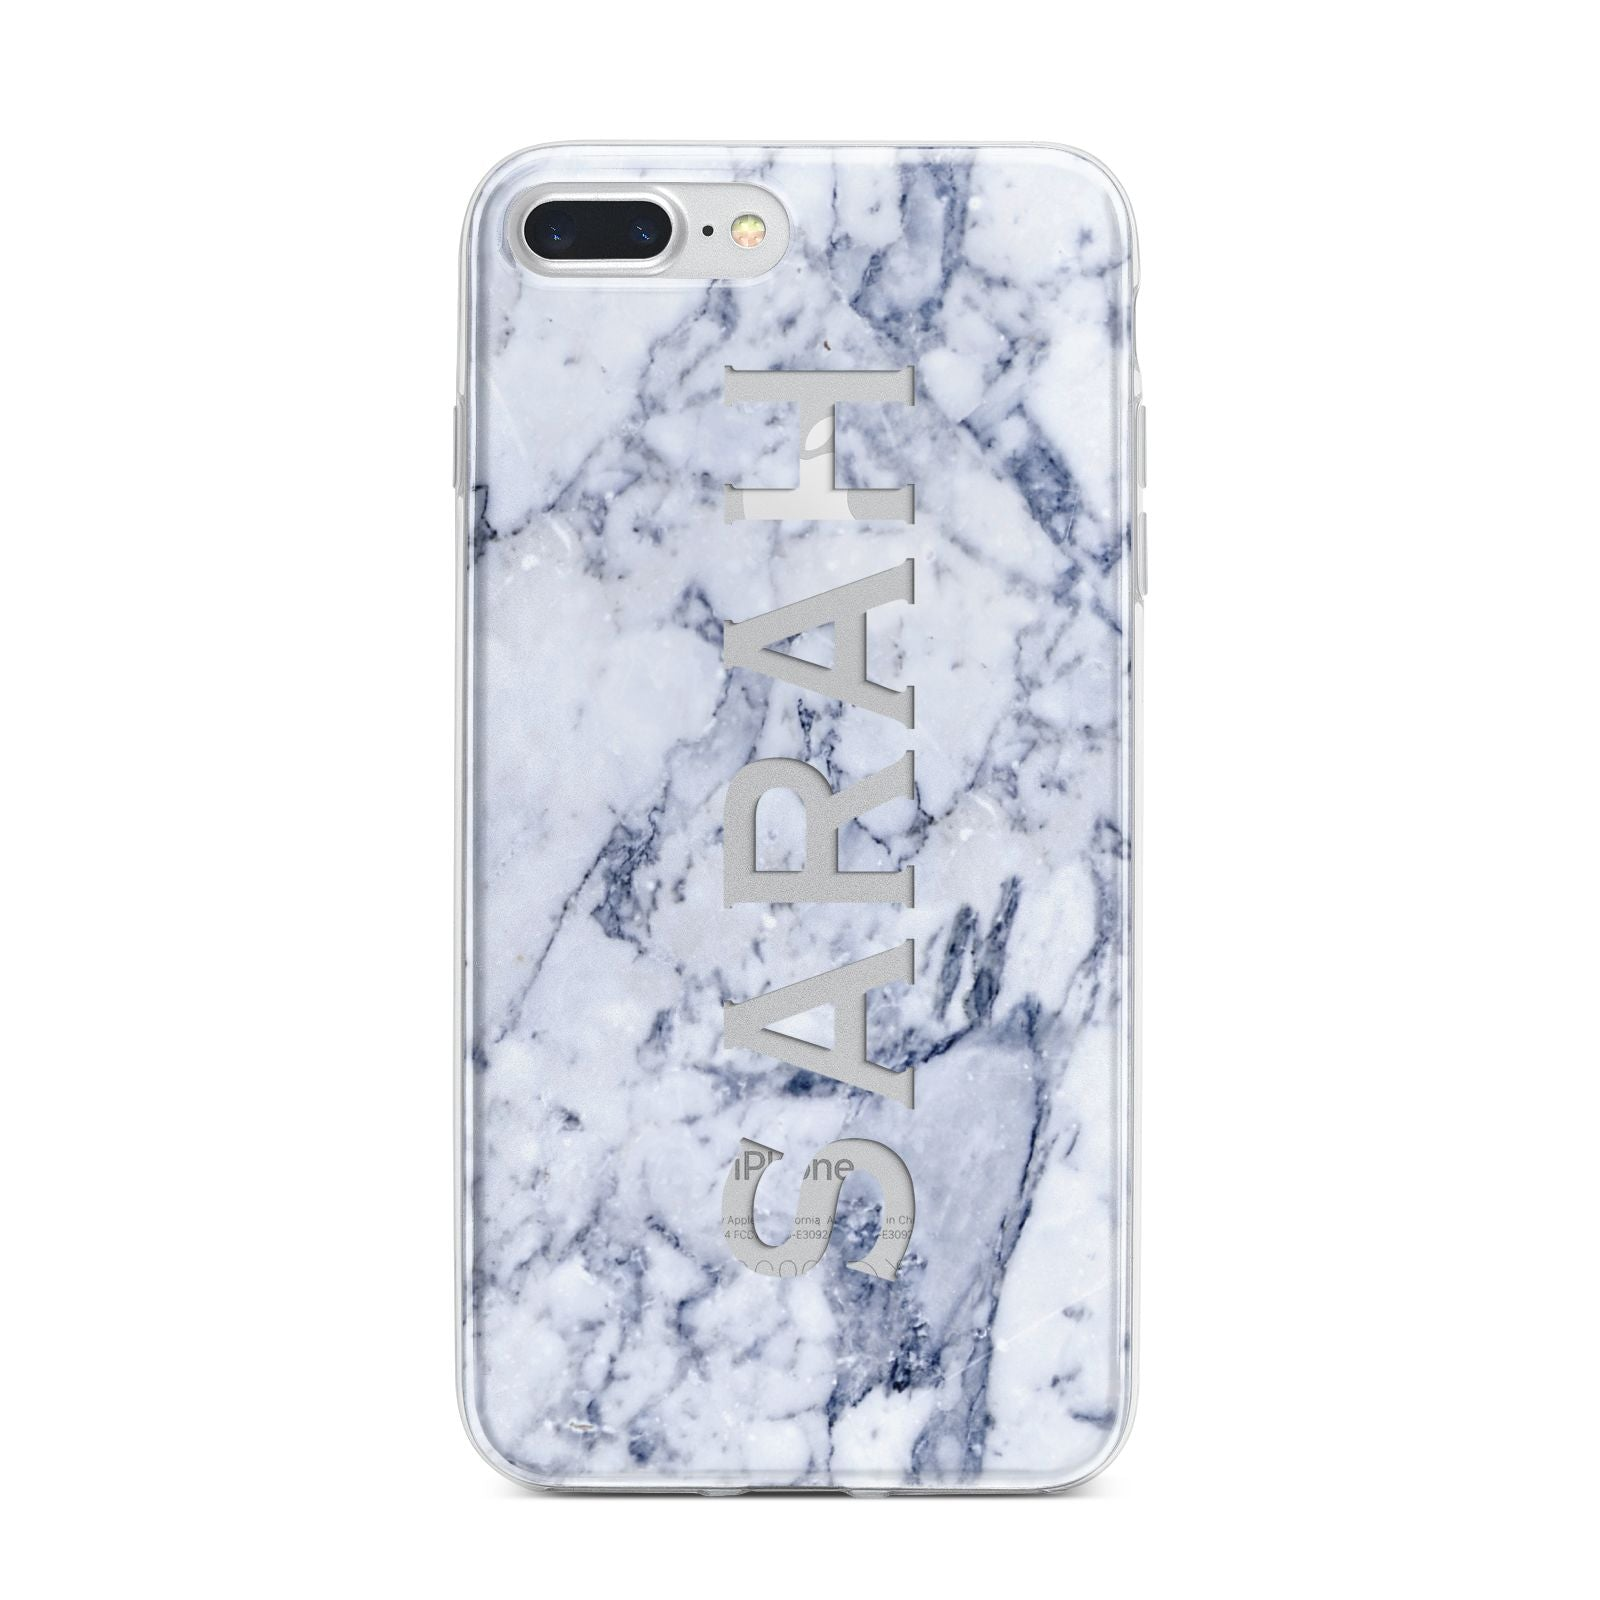 Personalised Clear Name Cutout Blue Marble Custom iPhone 7 Plus Bumper Case on Silver iPhone